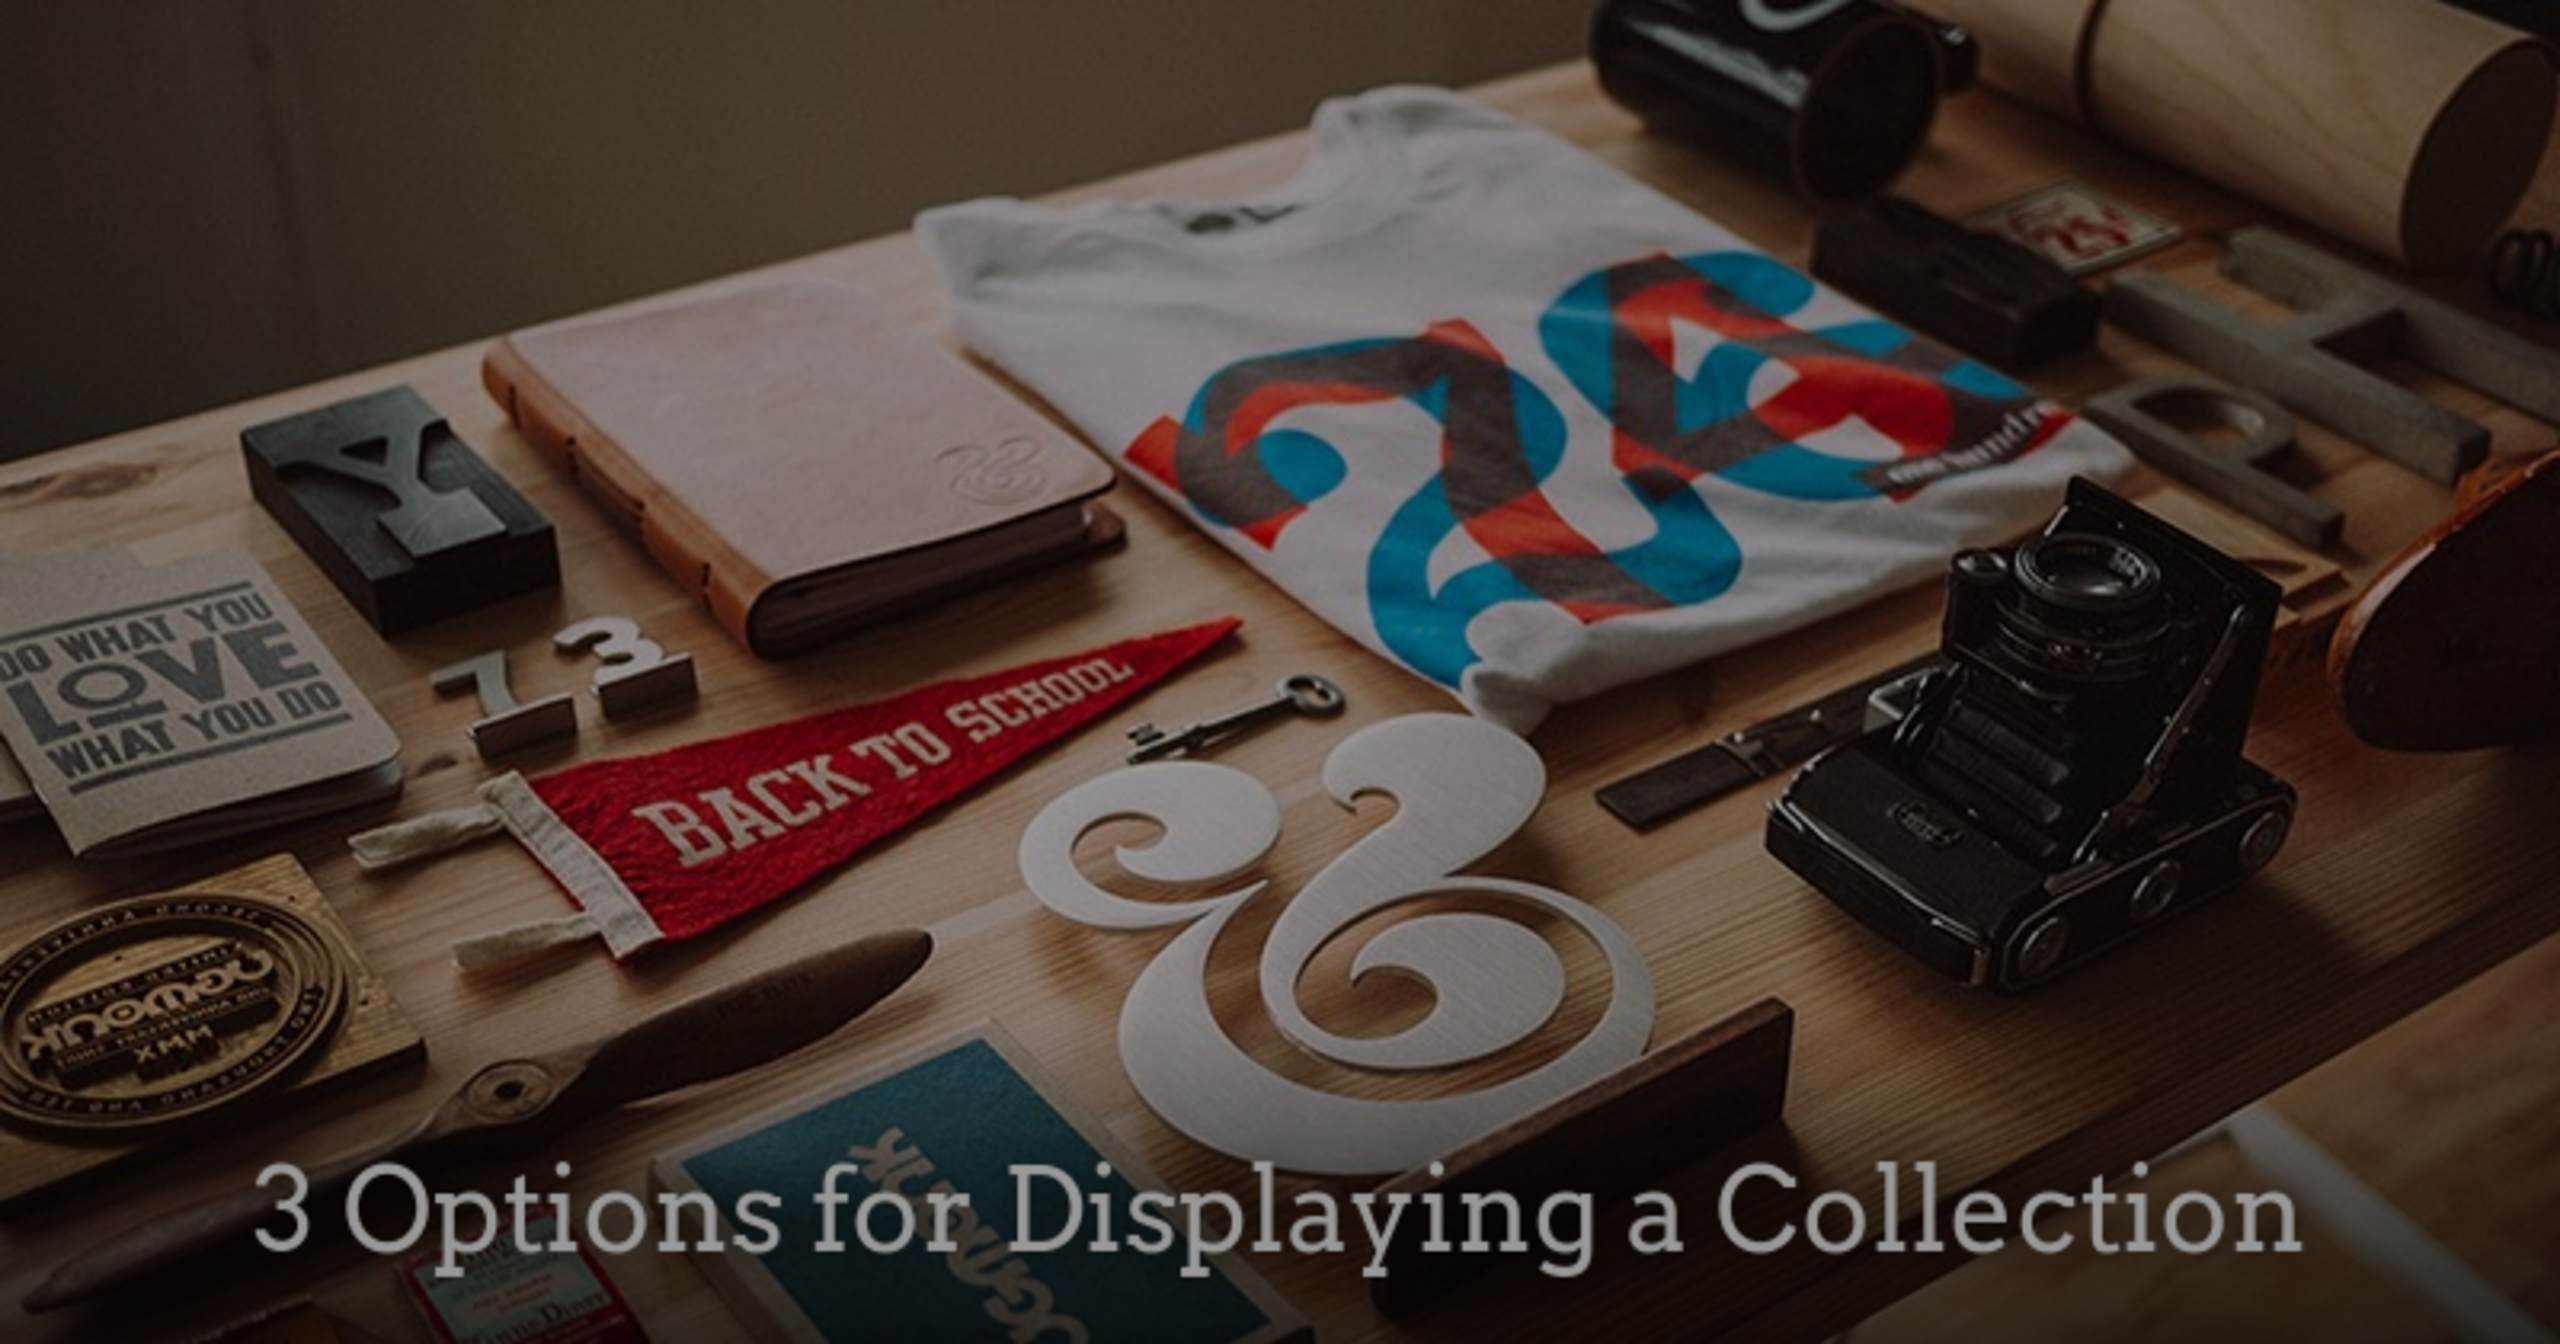 3 Options for Displaying a Collection